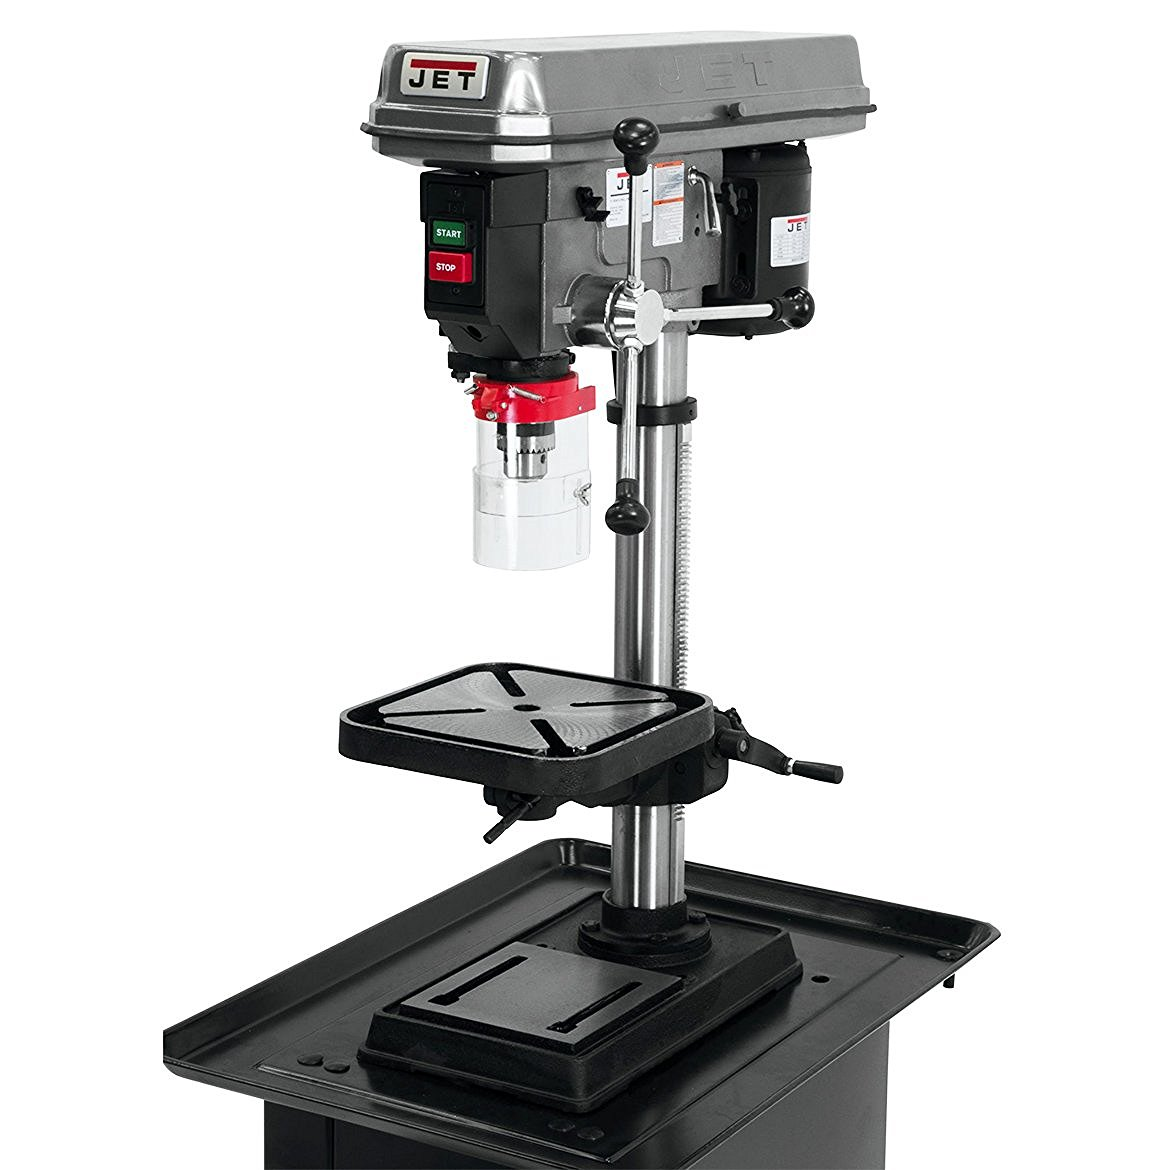 Jet Bench Model Drill Press